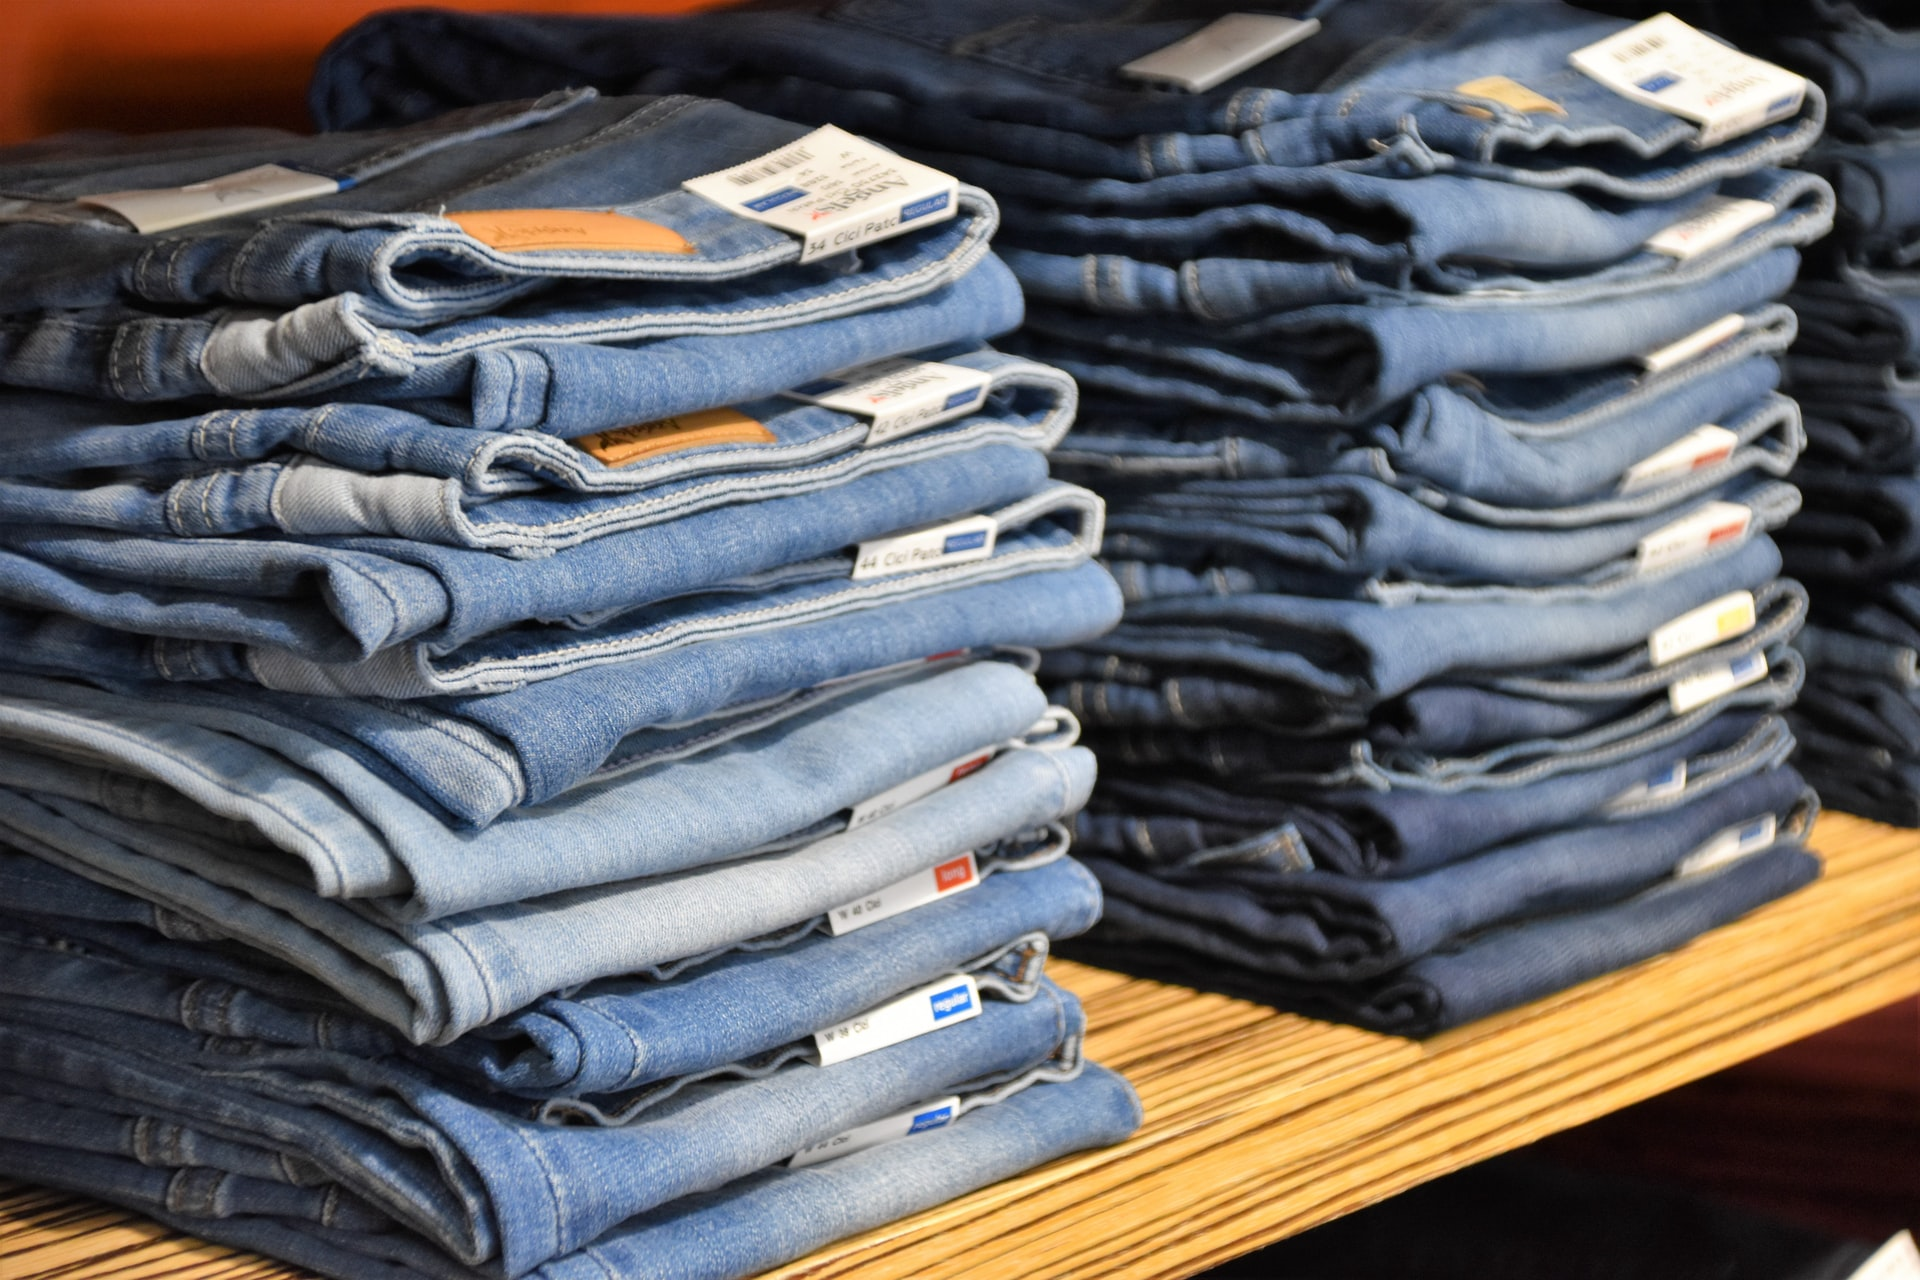 Jeans made in France - les marques de jeans 100% Françaises